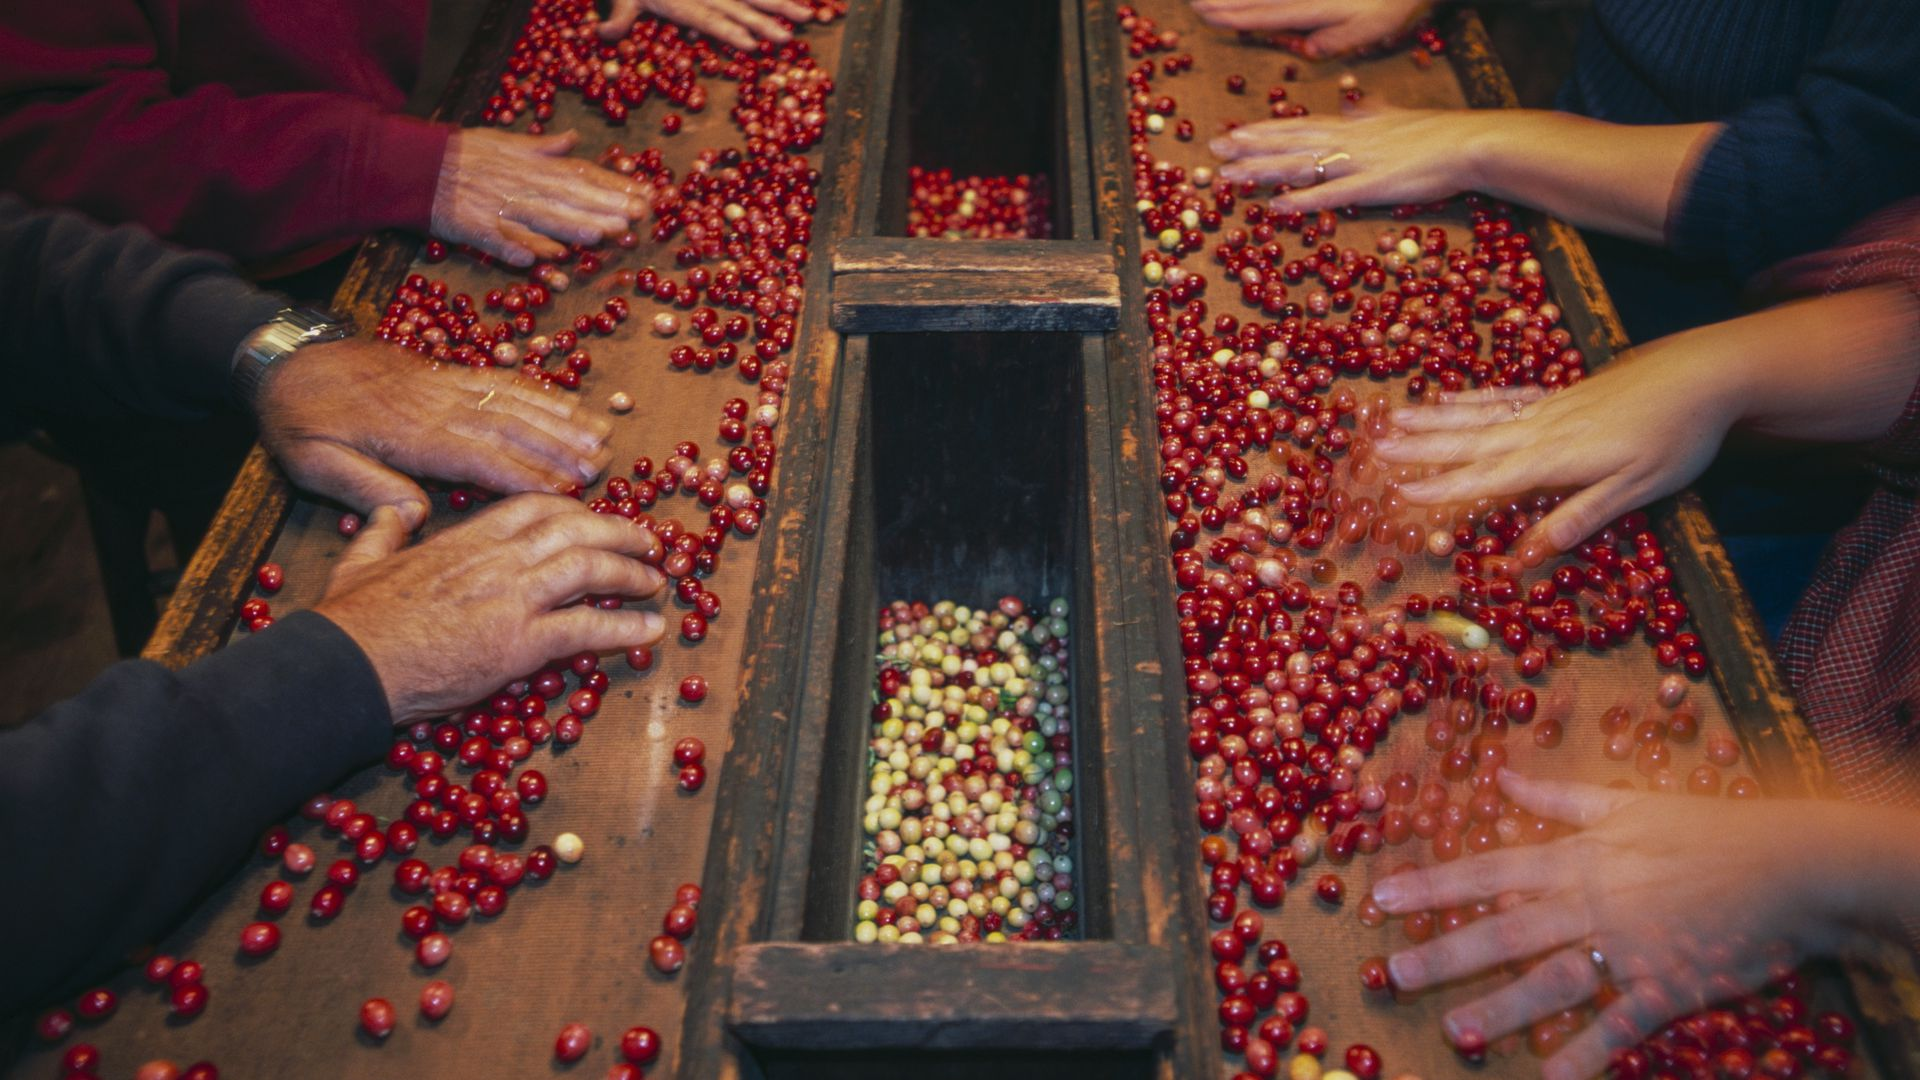 People sorting cranberries